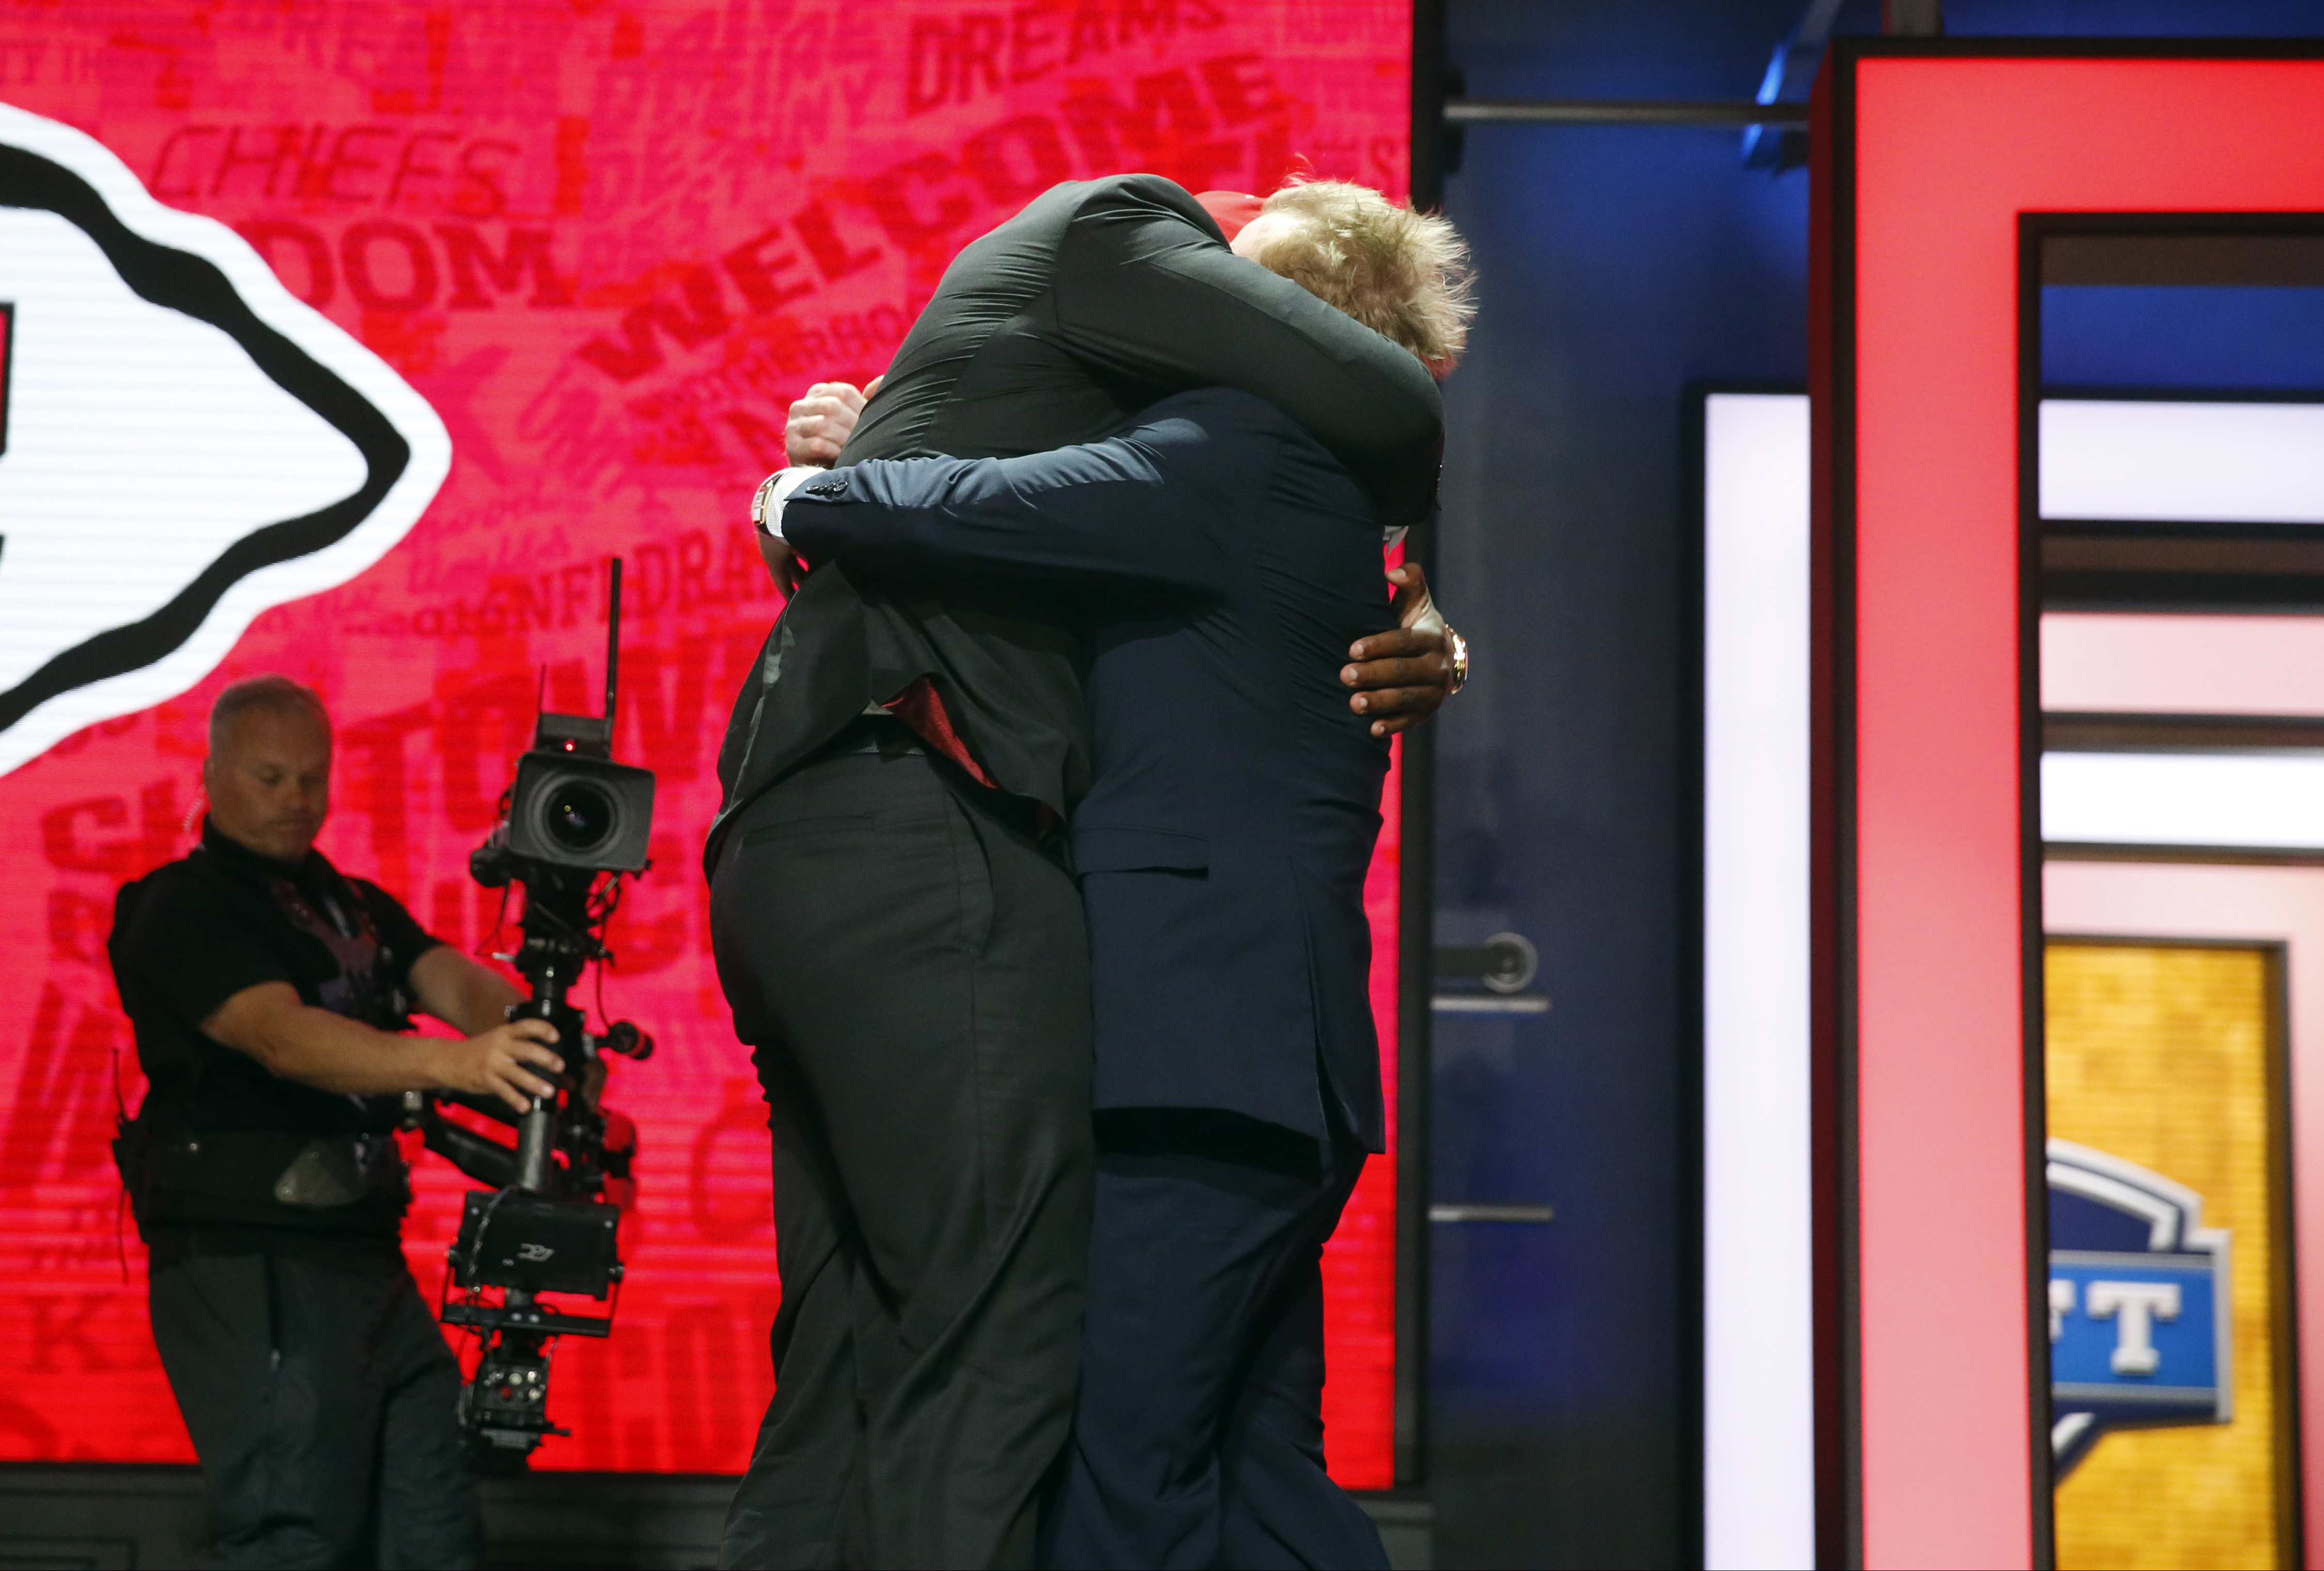 Mississippi State's Chris Jones celebrates with NFL Commissioner Roger Goodell after being selected by the Kansas City Chiefs as the 37th pick in the second round of the 2016 NFL football draft, Friday, April 29, 2016, in Chicago.